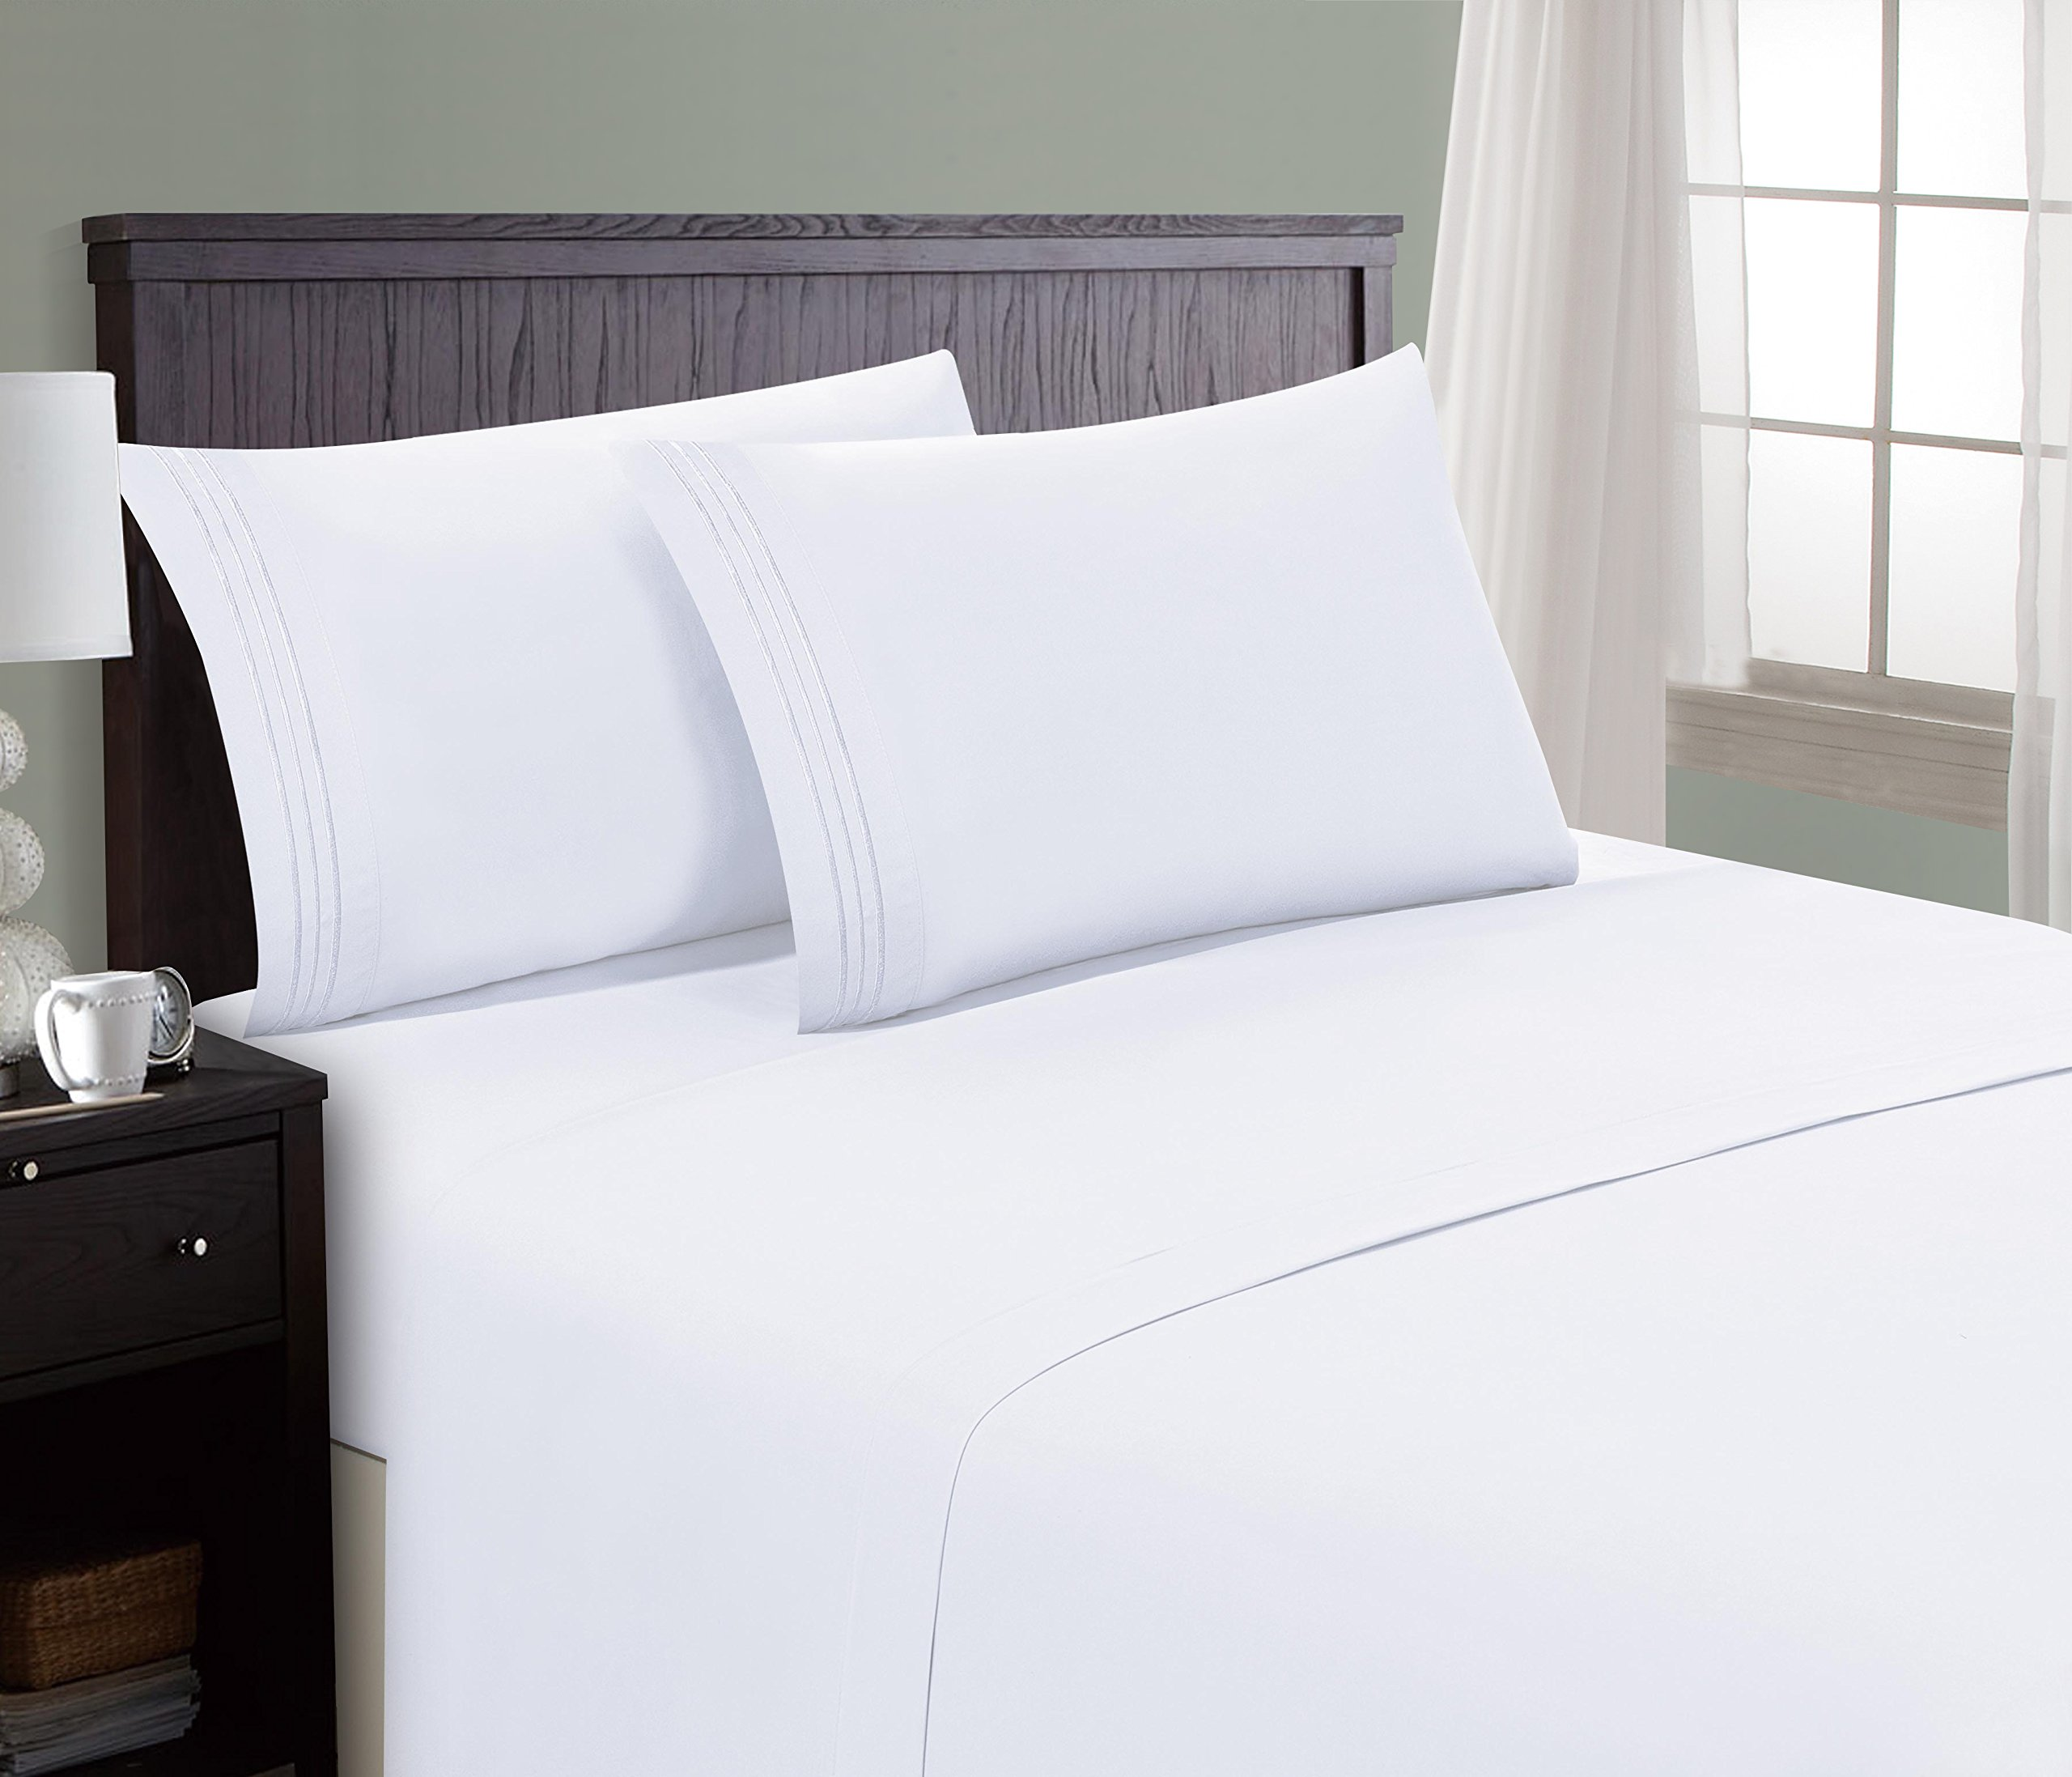 HC Collection Bed Sheet & Pillowcase Set HOTEL LUXURY 1800 Series Egyptian Quality Bedding Collection! Deep Pocket, Wrinkle & Fade Resistant,Luxurious,Comfortable,Extremely Durable(Queen, White)